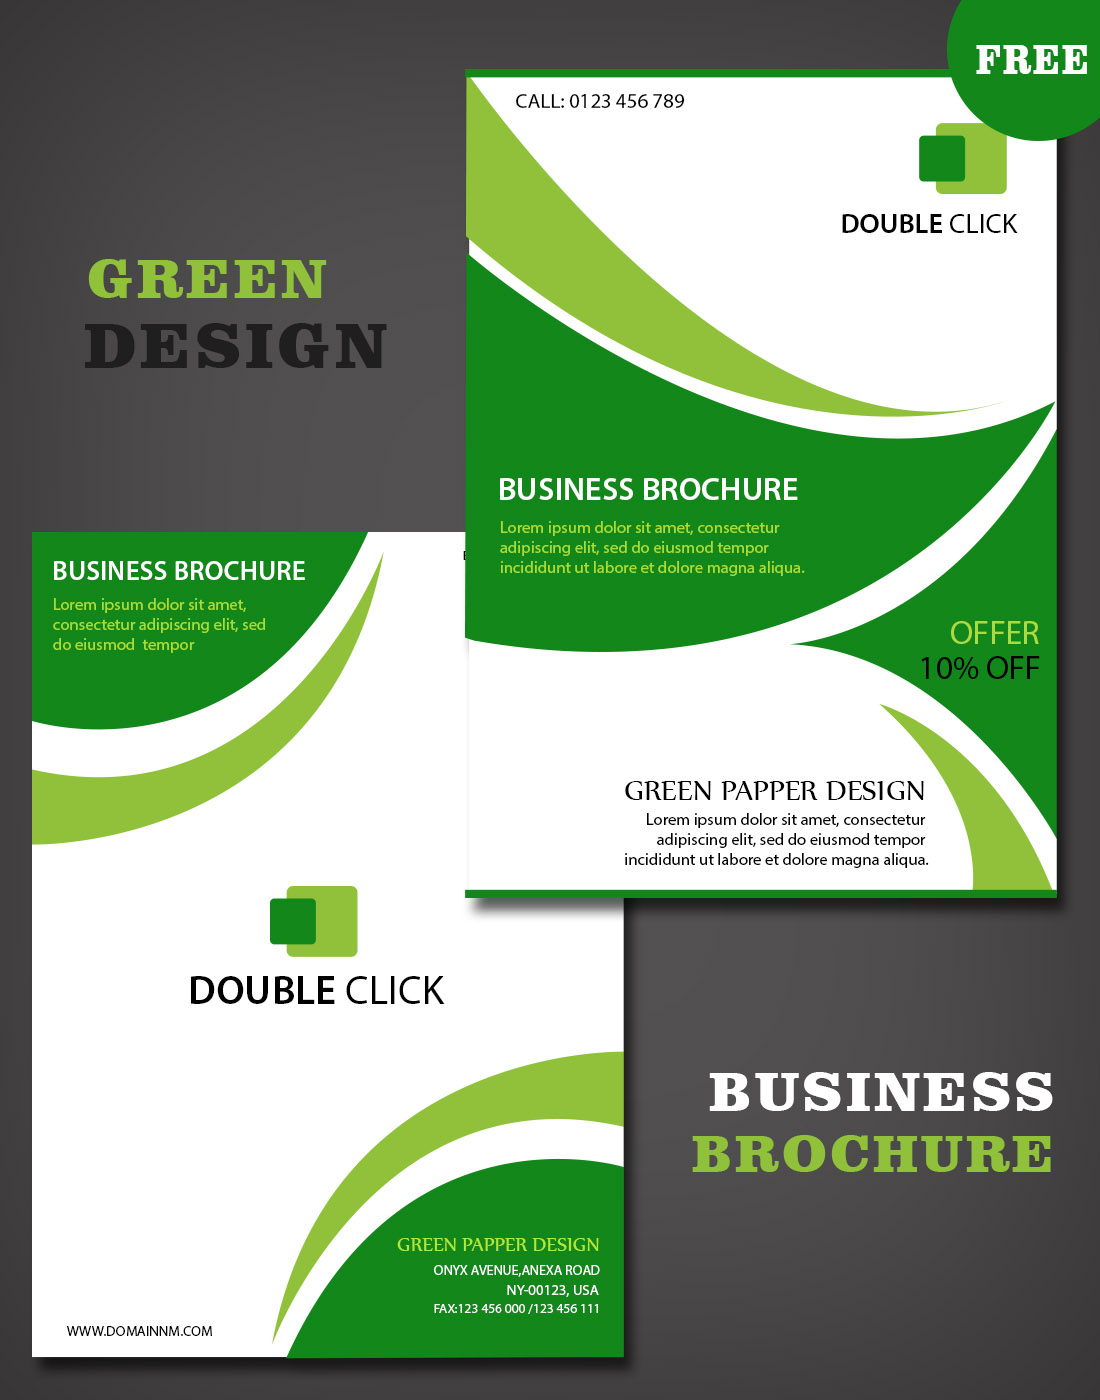 Business brochure templates download for Free business brochure templates download